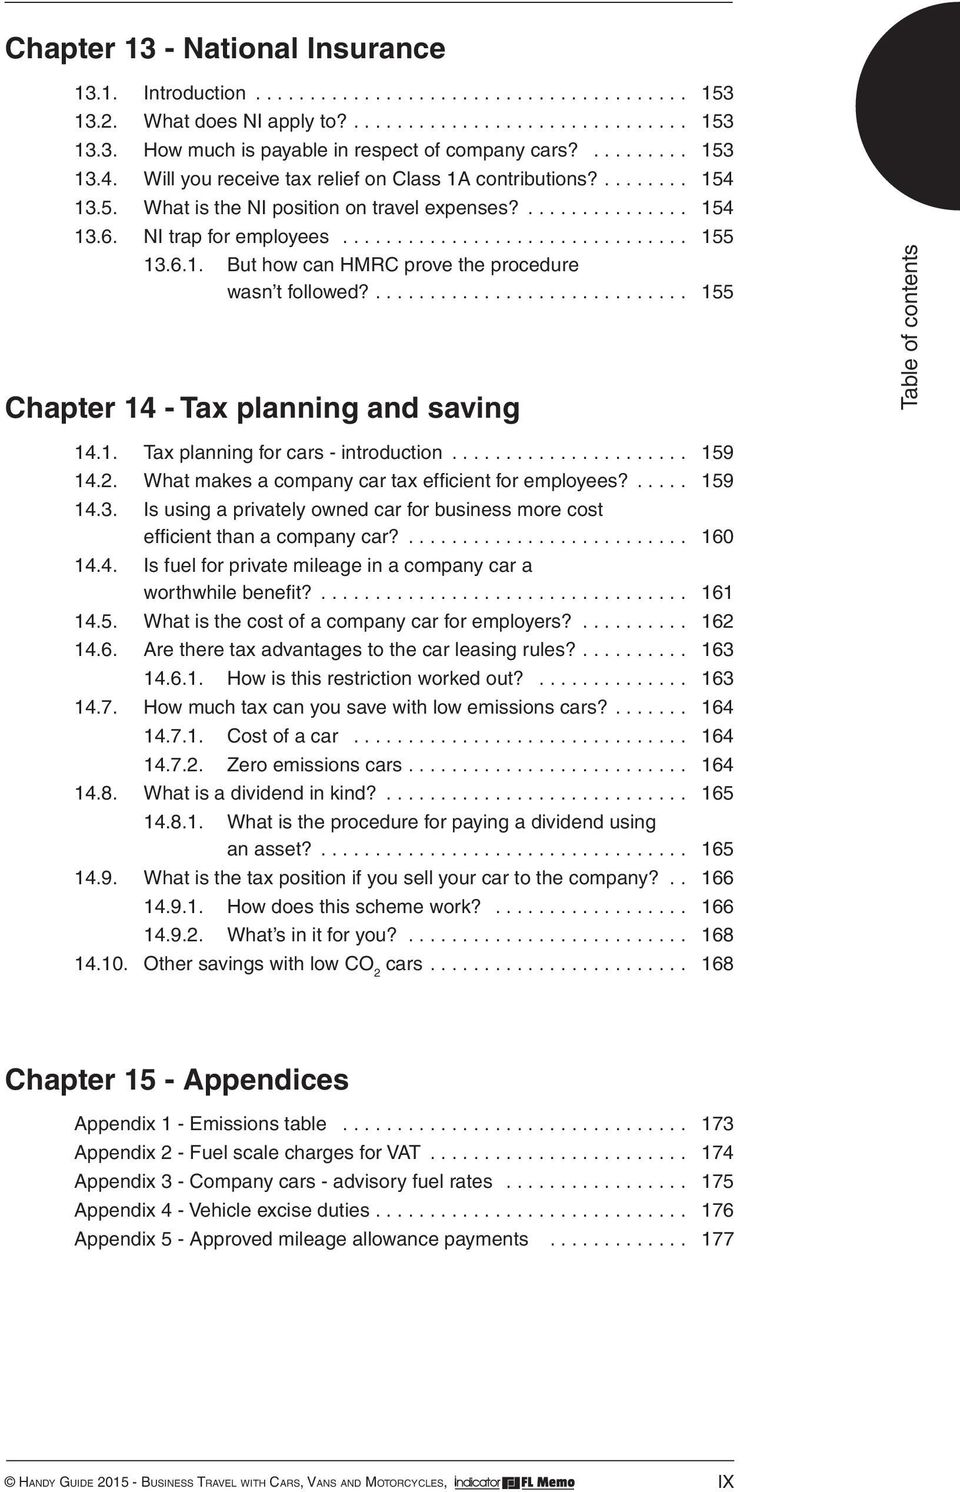 .... 155 Chapter 14 - Tax planning and saving 14.1. Tax planning for cars - introduction... 159 14.2. What makes a company car tax efficient for employees?... 159 14.3.